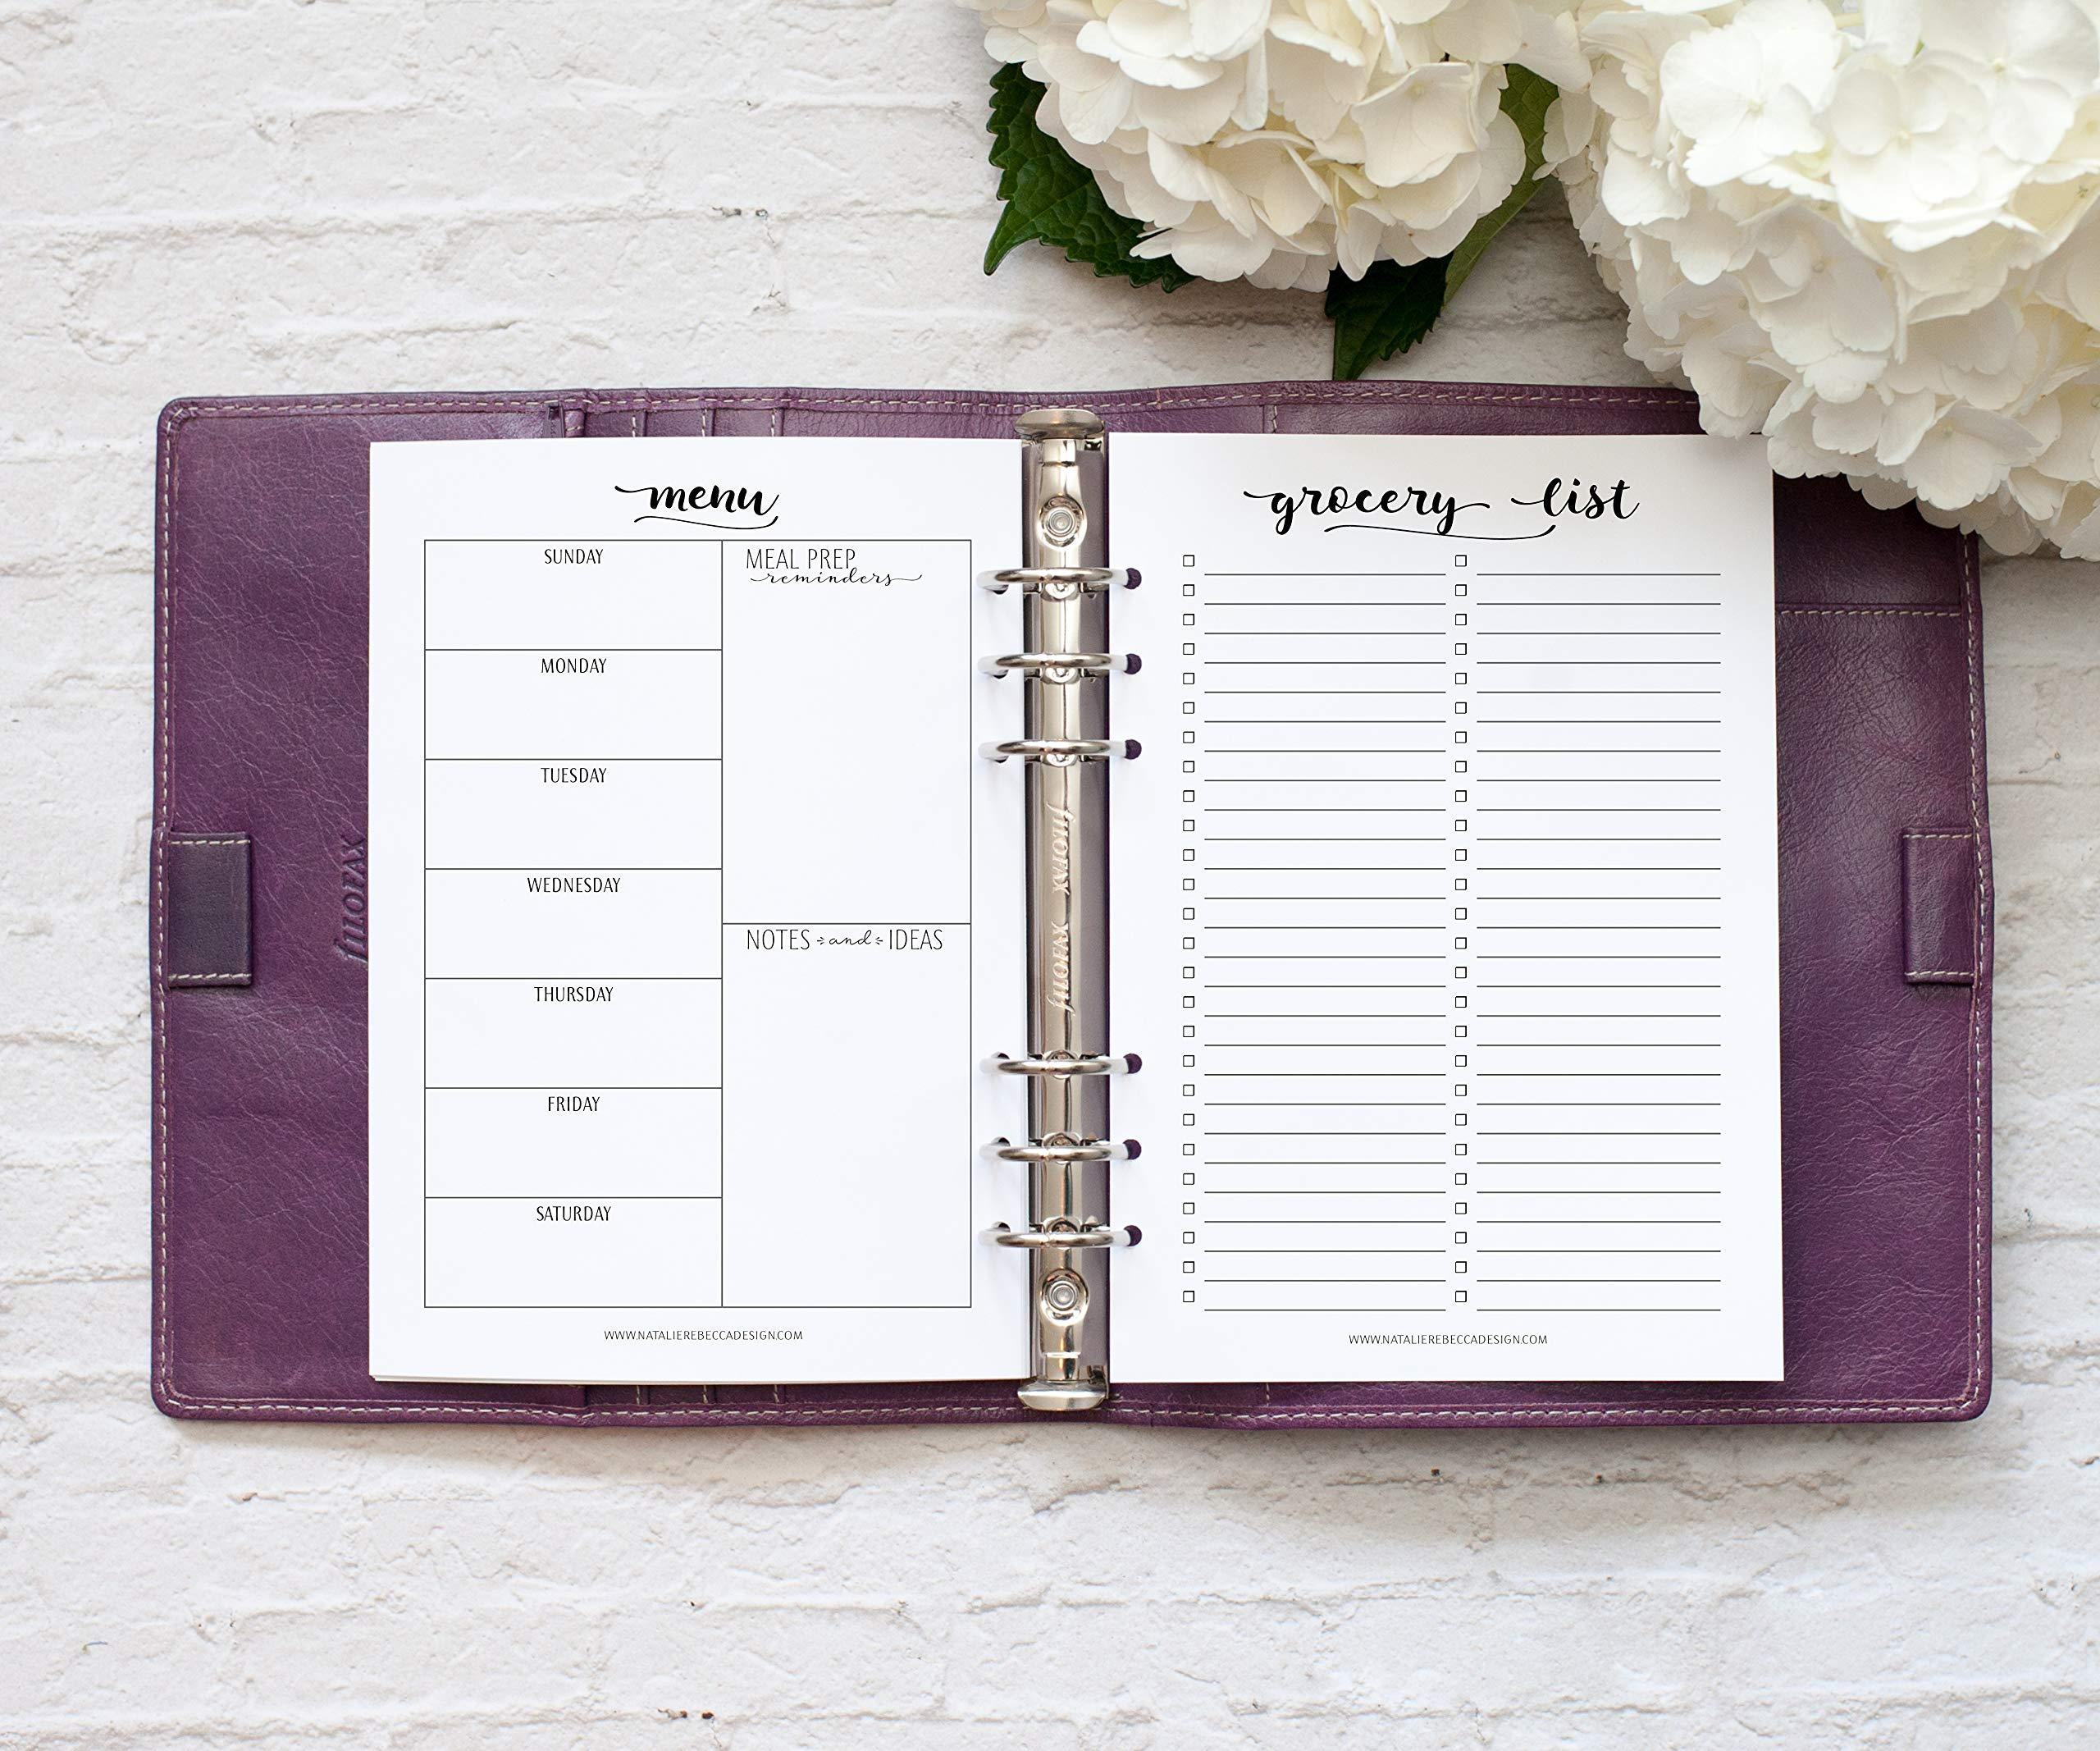 A5 Planner Menu and Grocery List Inserts, Paper Refills for Filofax, Kikki K, 6 Month Supply